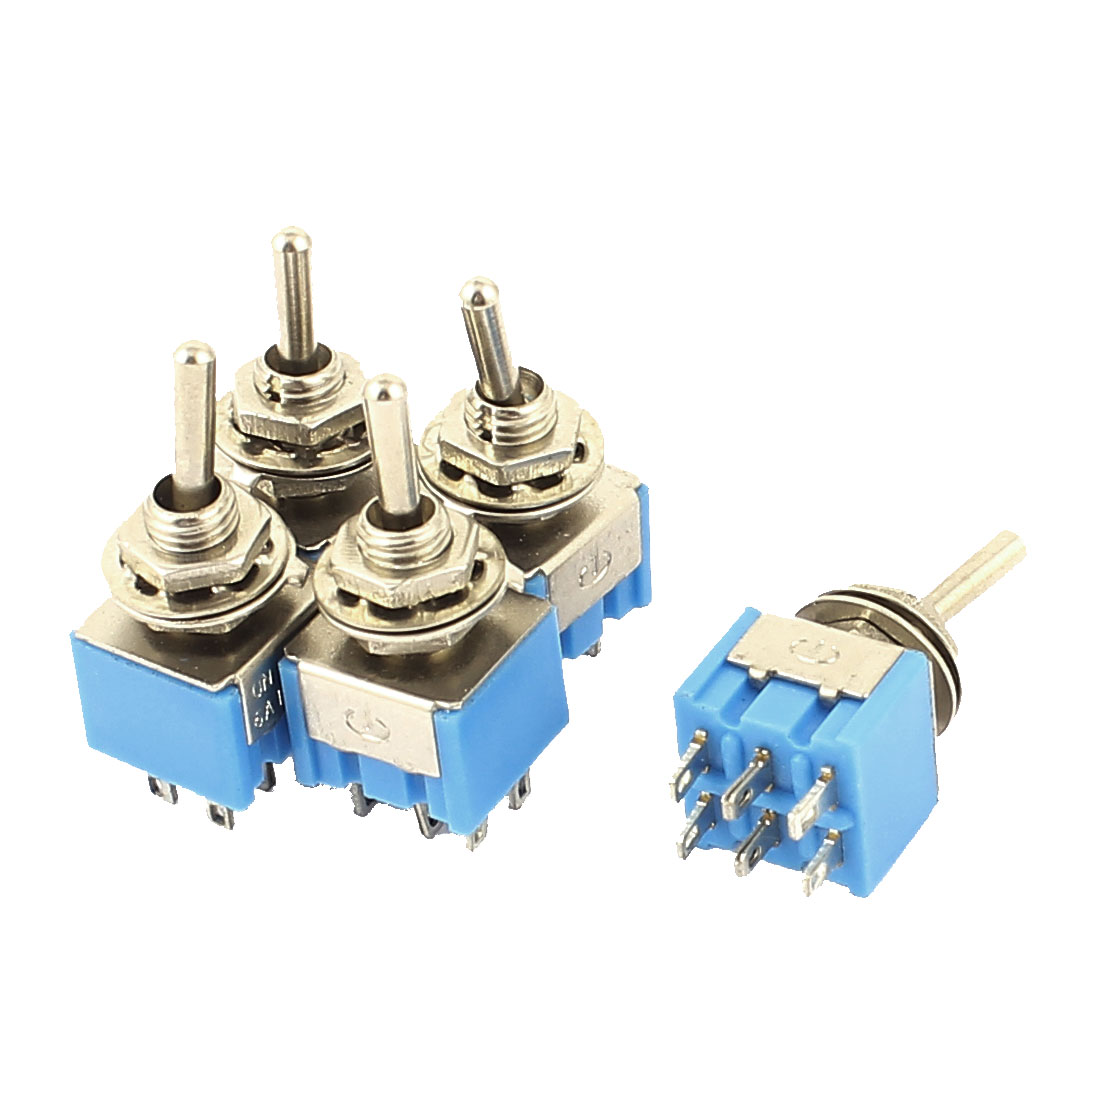 5Pcs 3 Position ON/OFF/ON DPDT Mini Latching Toggle Switch Blue AC 125V 6A